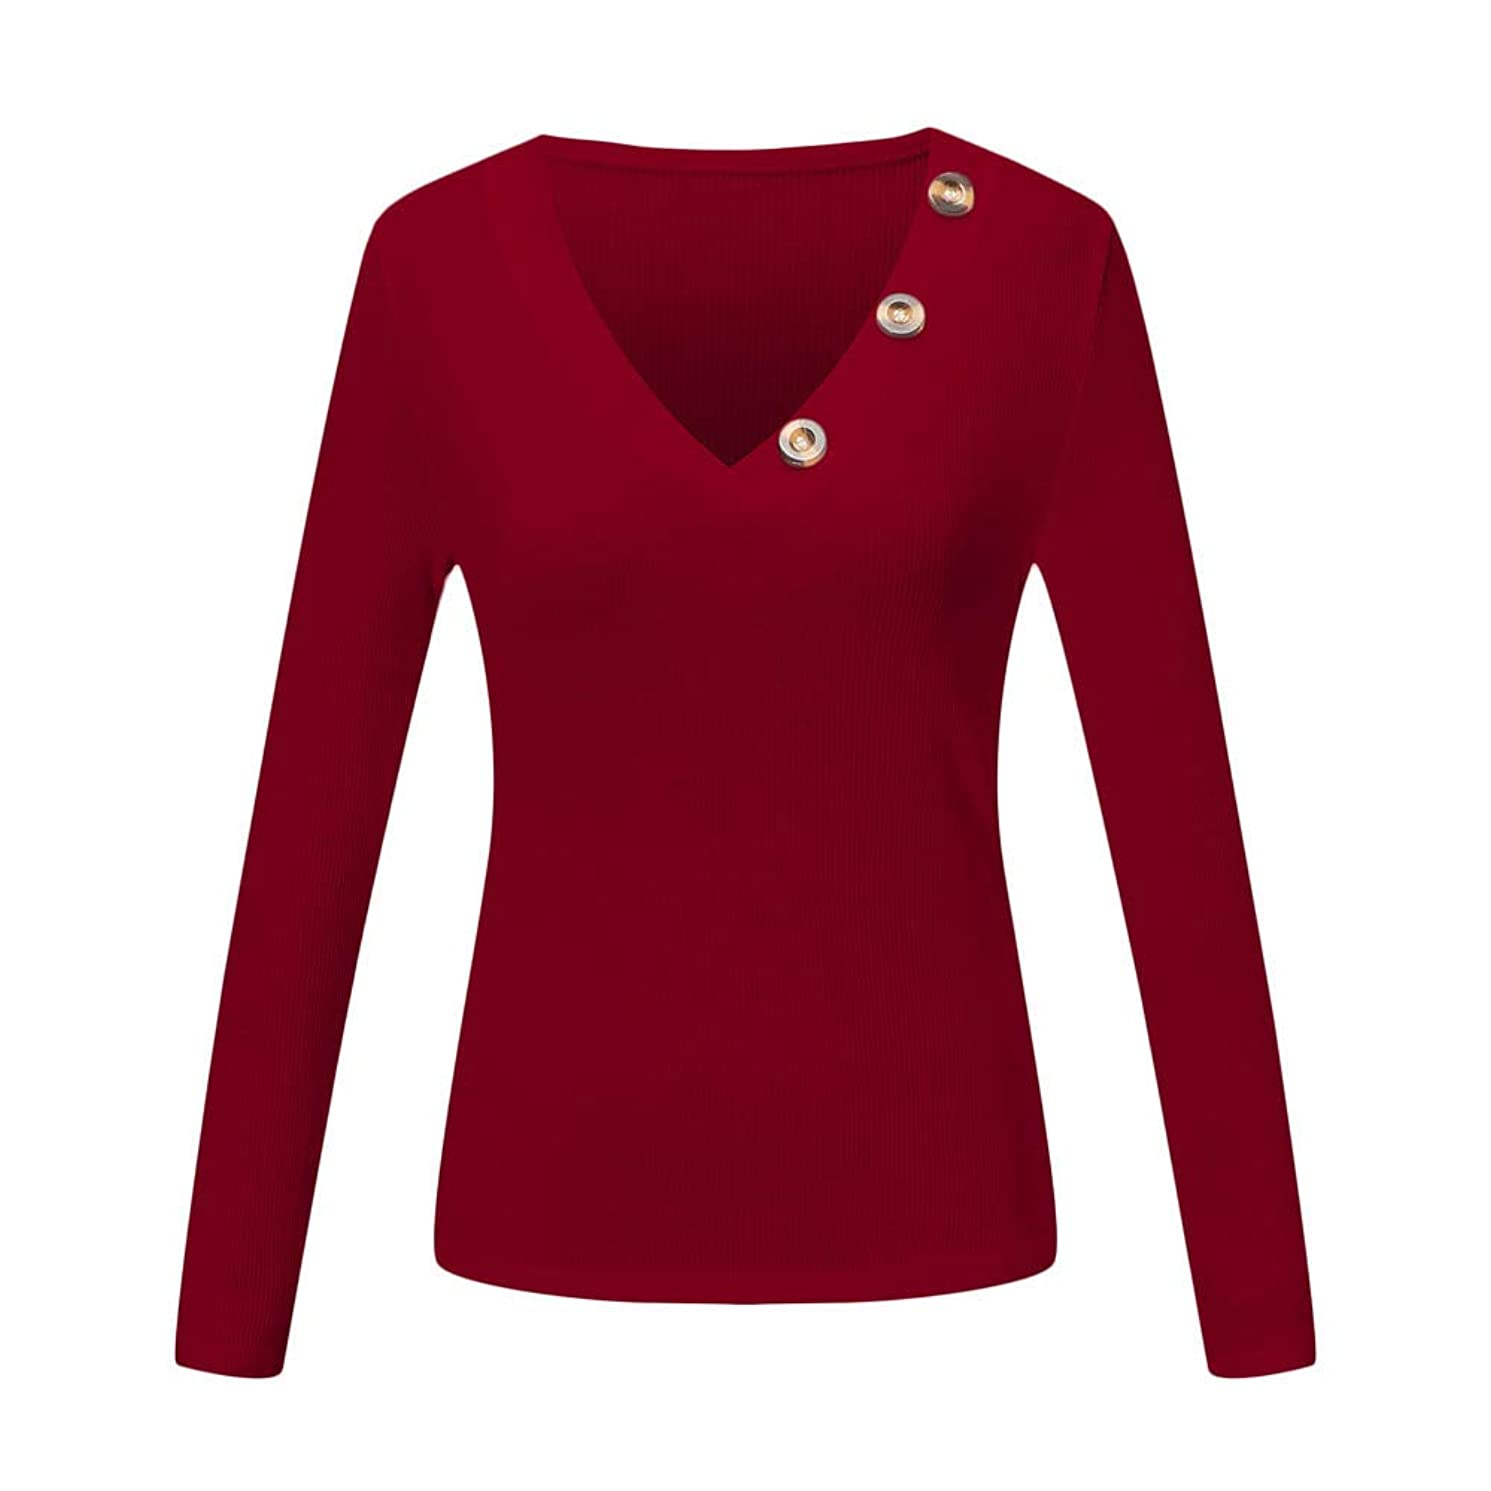 Fashion Womens Casual Button Knit Sweaters Shirts Henley Long Sleeve V Neck Tunic Blouse Pullover Tops